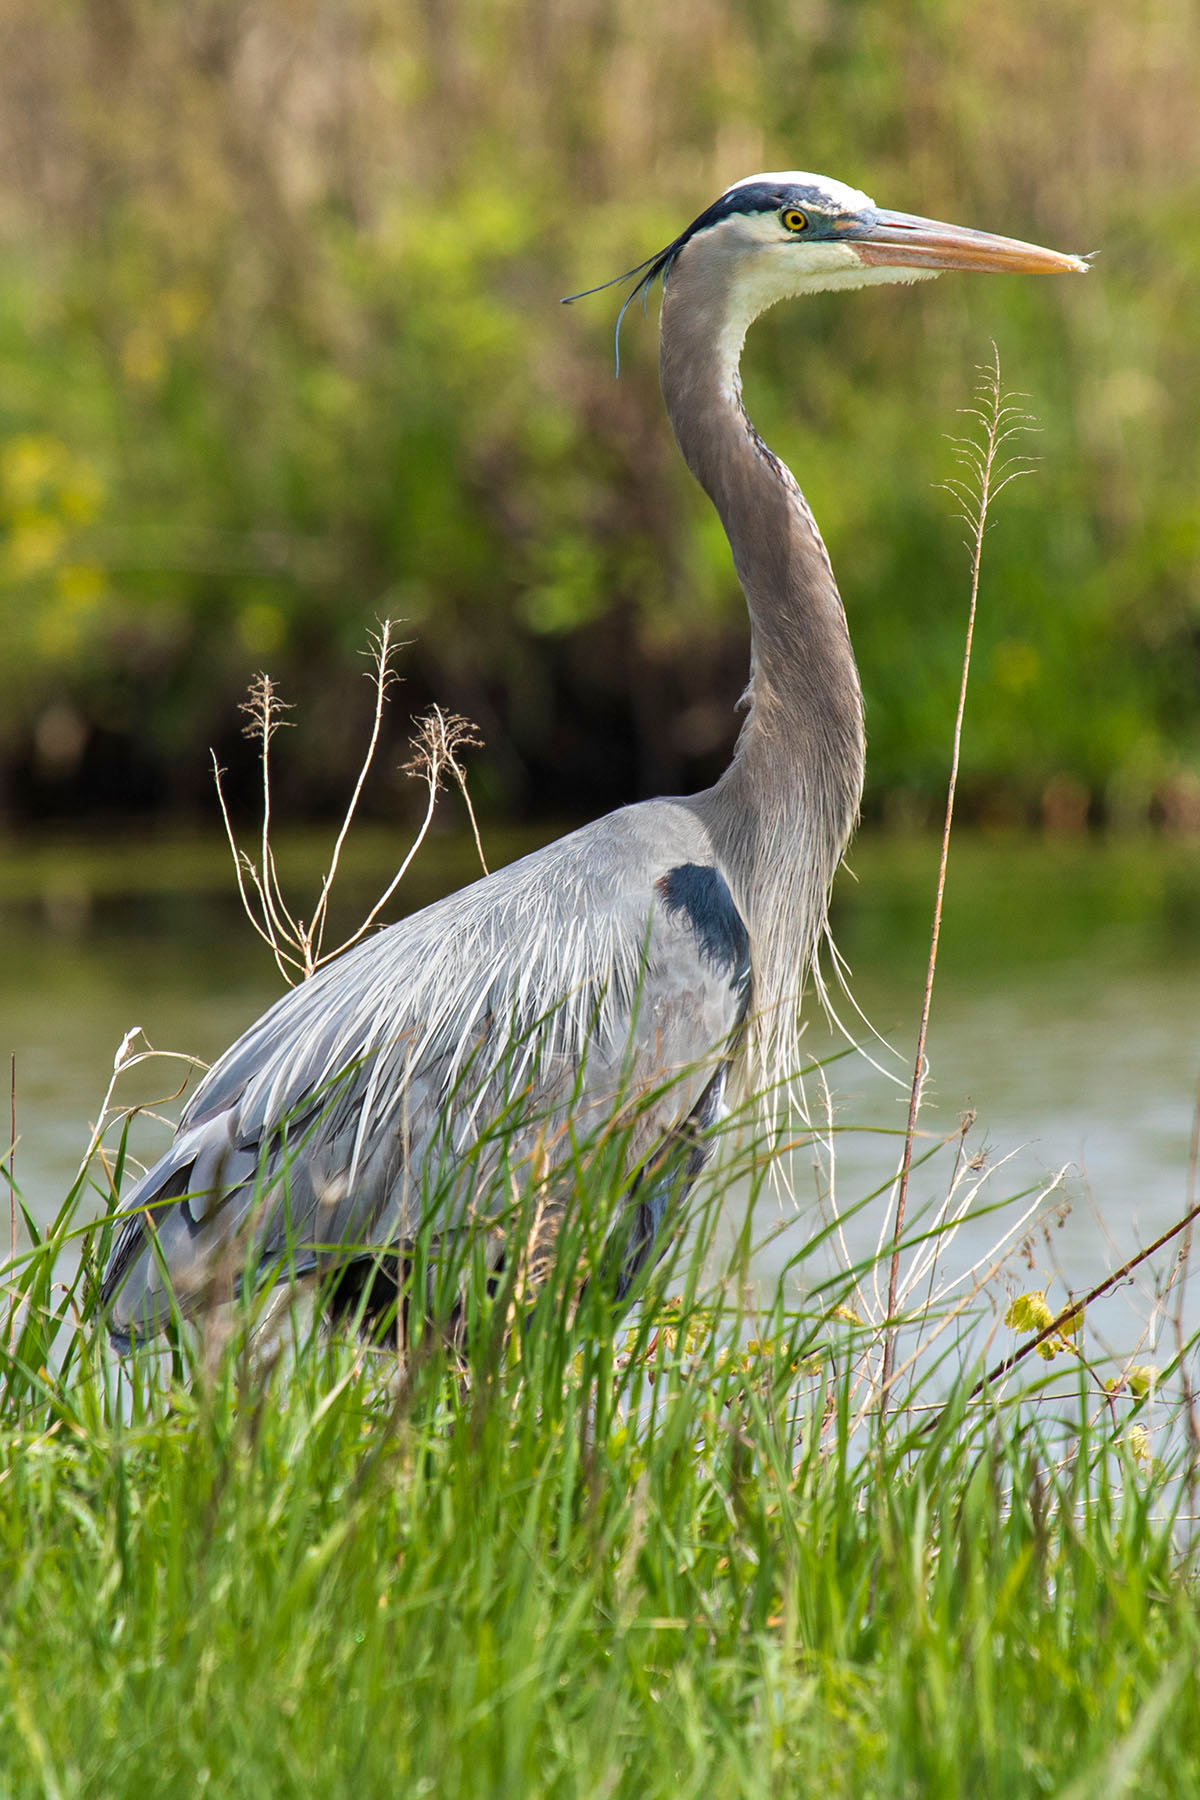 A great blue heron makes an appearance on May 15. nature, wildlife, animal, bird, great blue heron Photo: Marty Murphy